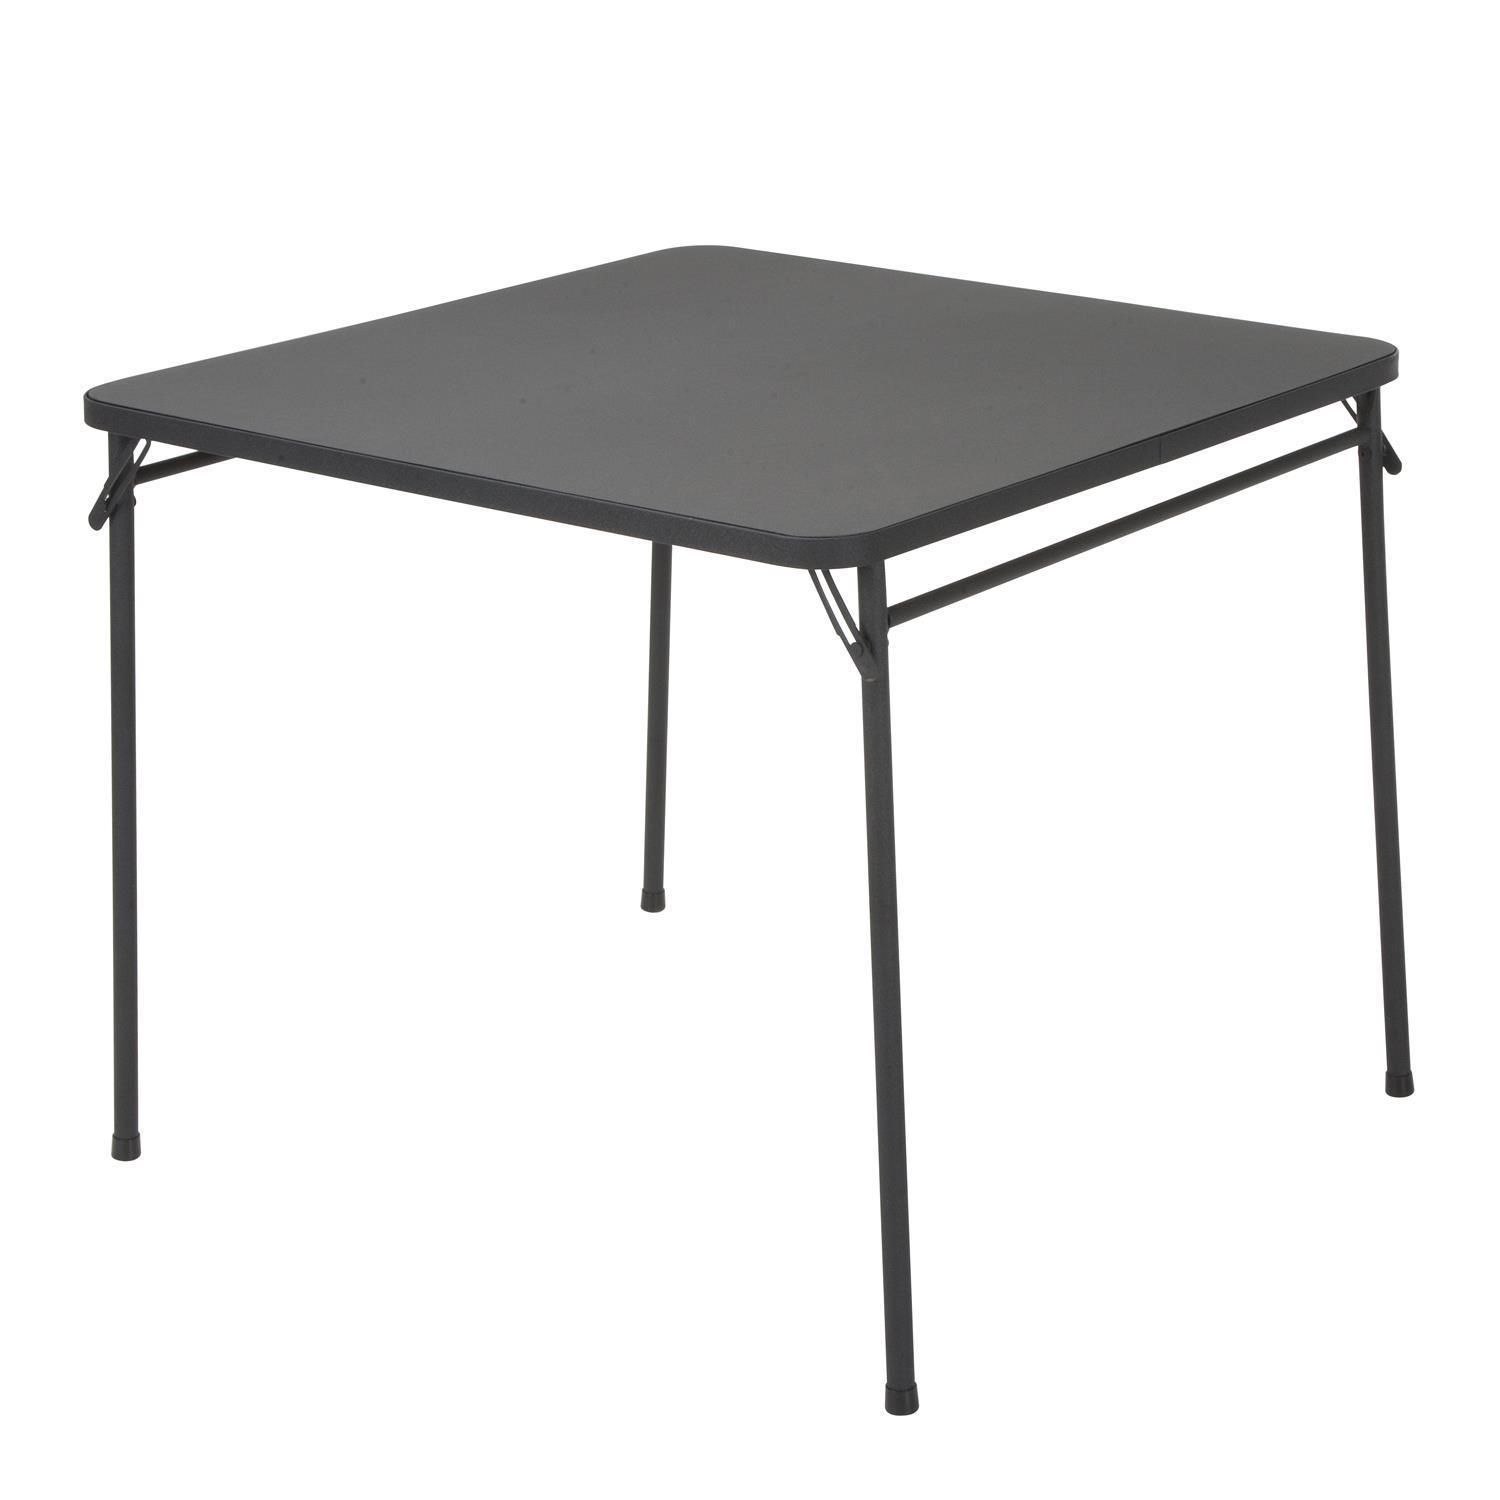 Cosco 34-inch PVC Top Folding Table